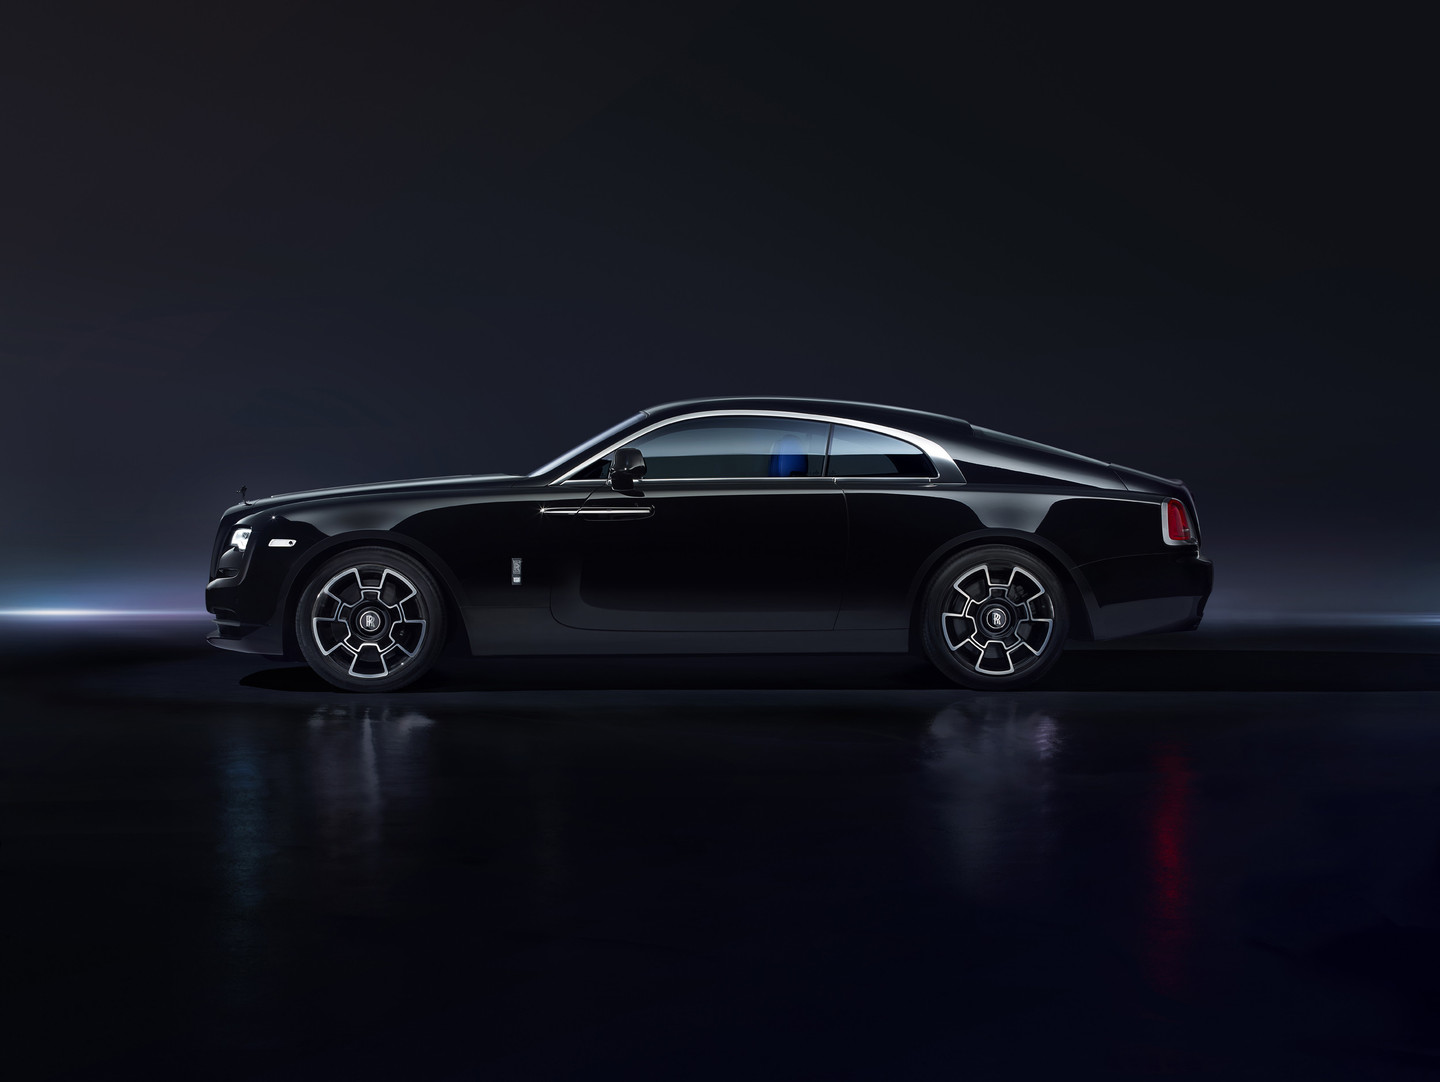 The demand for Rolls-Royce cars decreased by 23%